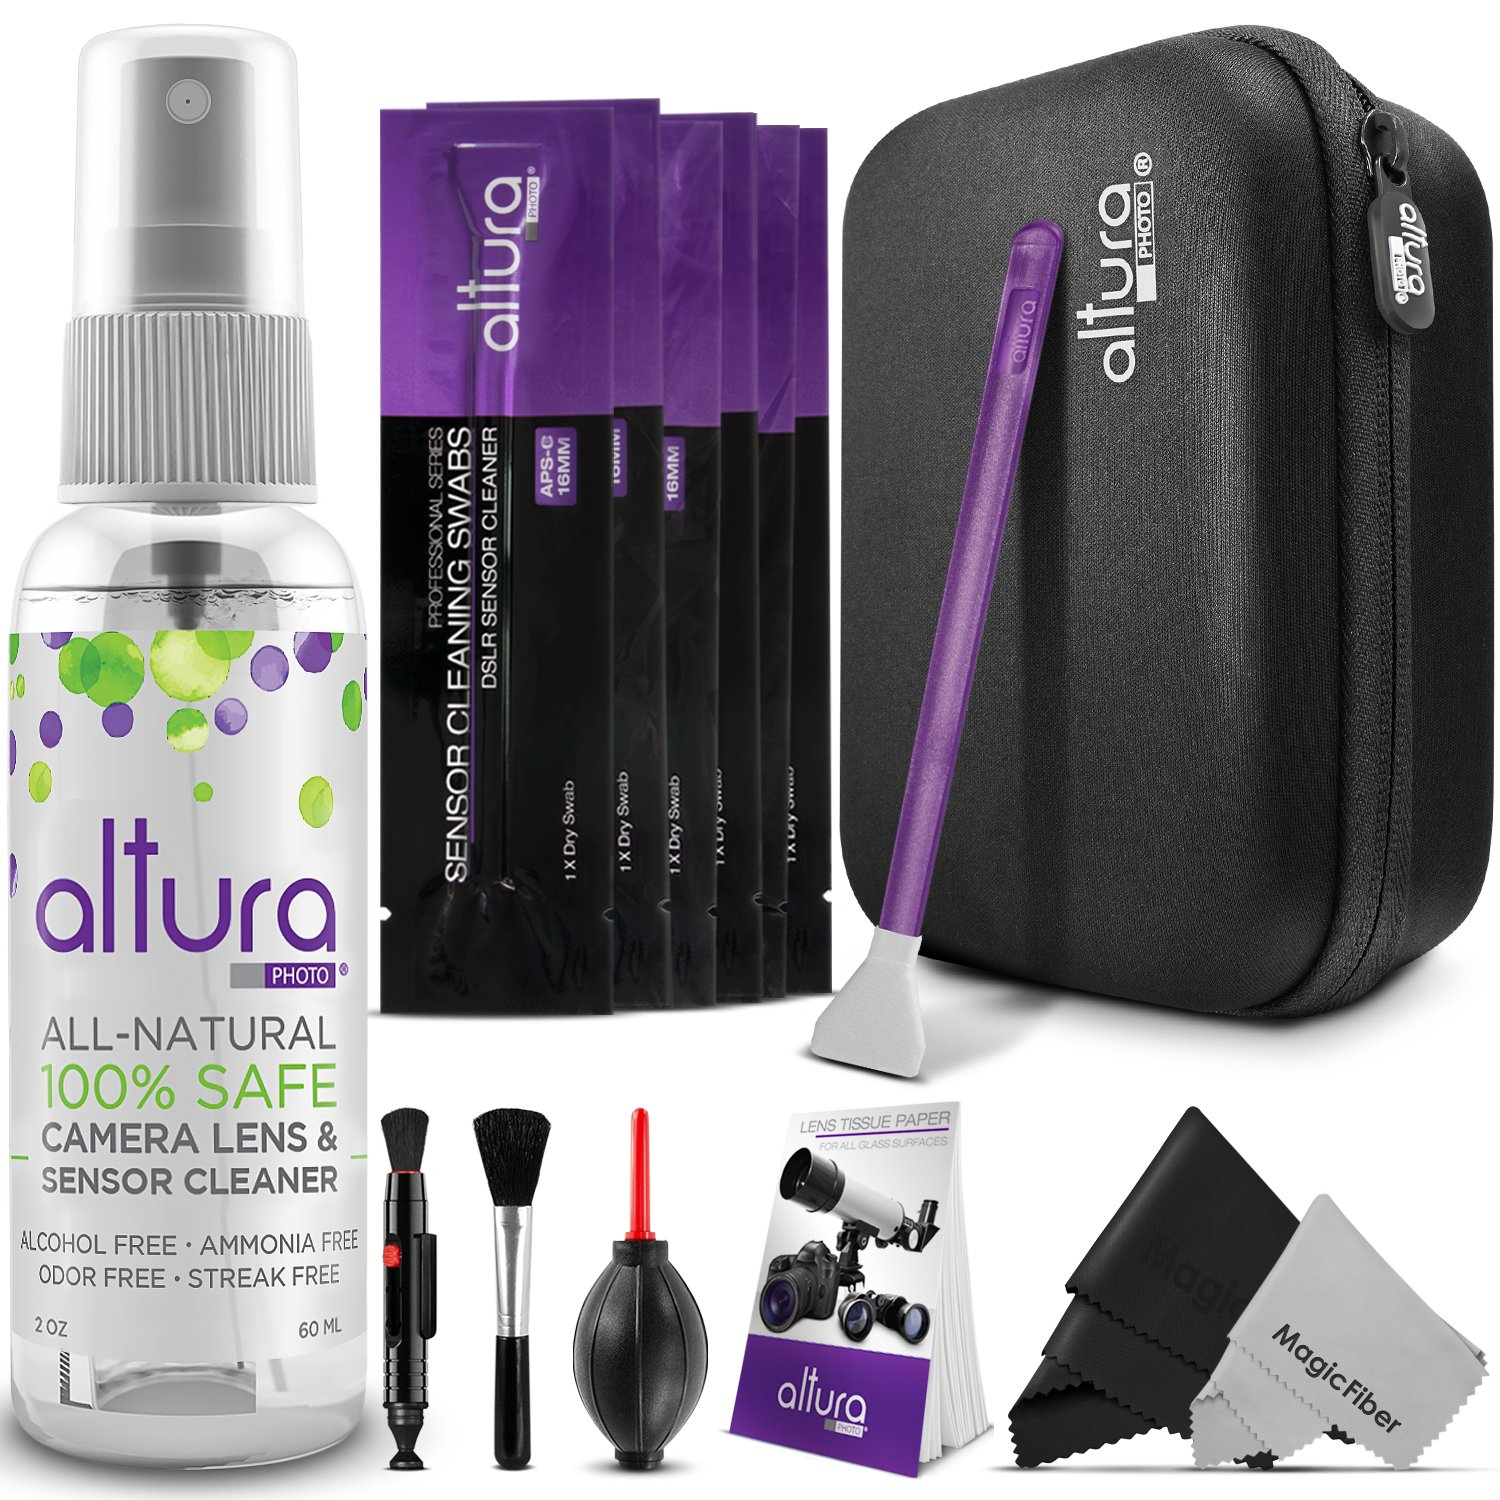 Altura Photo Professional Cleaning Kit for DSLR Cameras and Sensors Bundle with APS-C Sensor Cleaning Swabs and Carry Case by Altura Photo